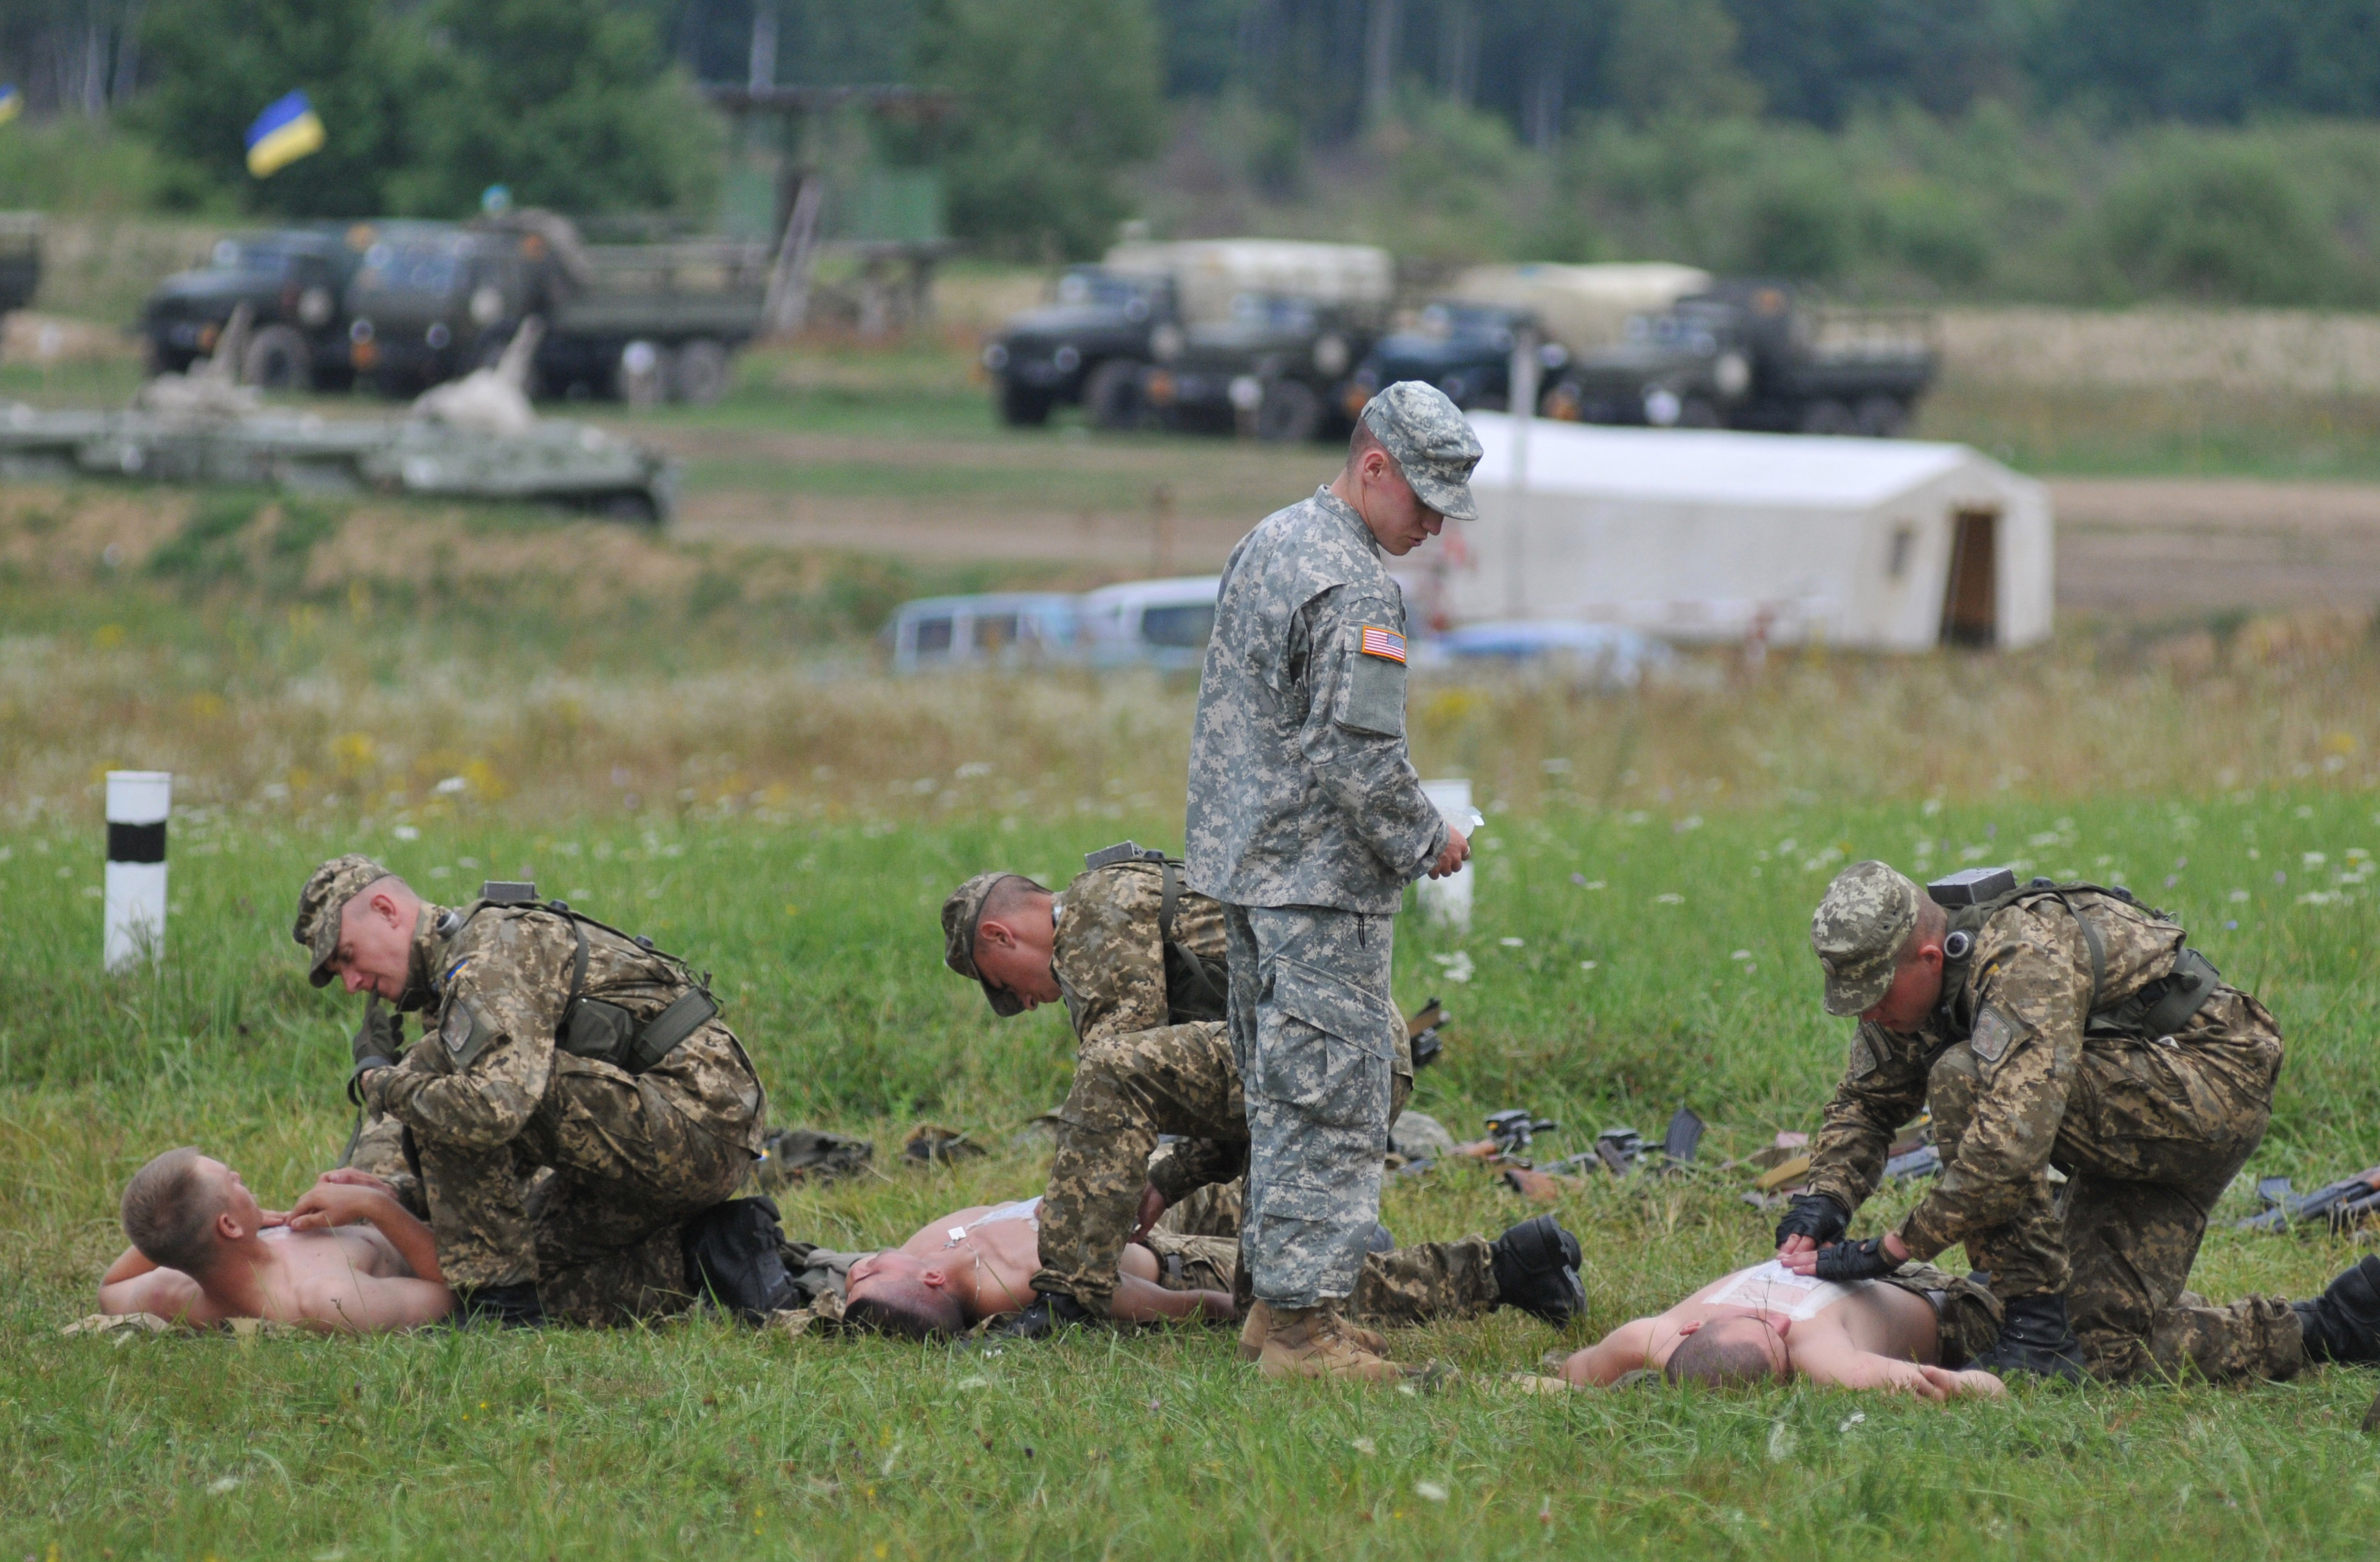 A US serviceman teaches Ukrainian soldiers how to give emergency medical aid during the Rapid Trident/Saber Guardian 2015 military exercises at the International Peacekeeping and Security Centre base outside Lviv, Ukraine on July 24, 2015.